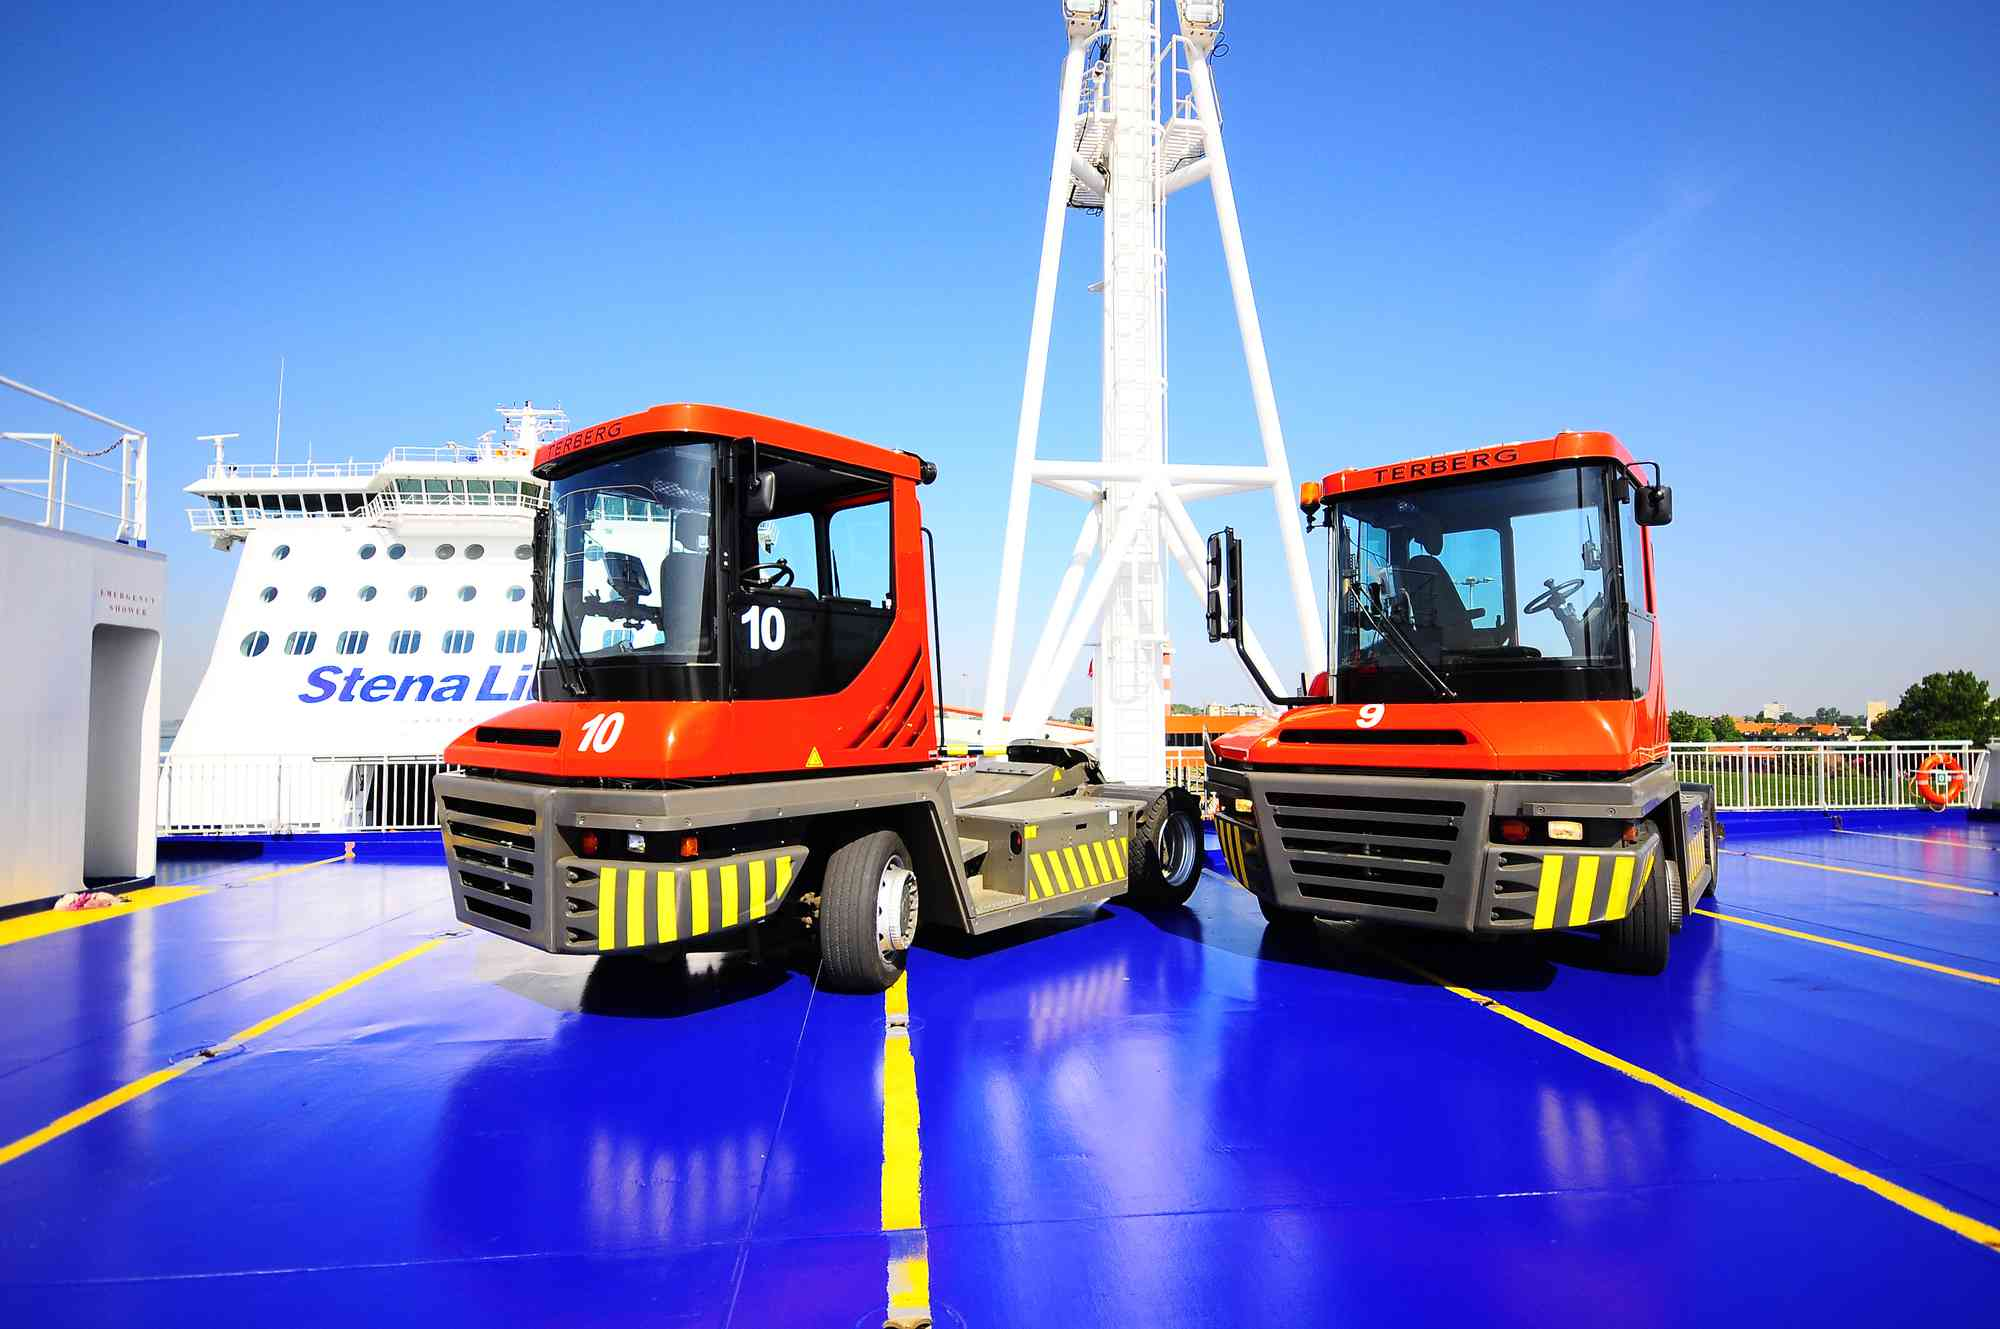 Covers for RoRo tractor cab